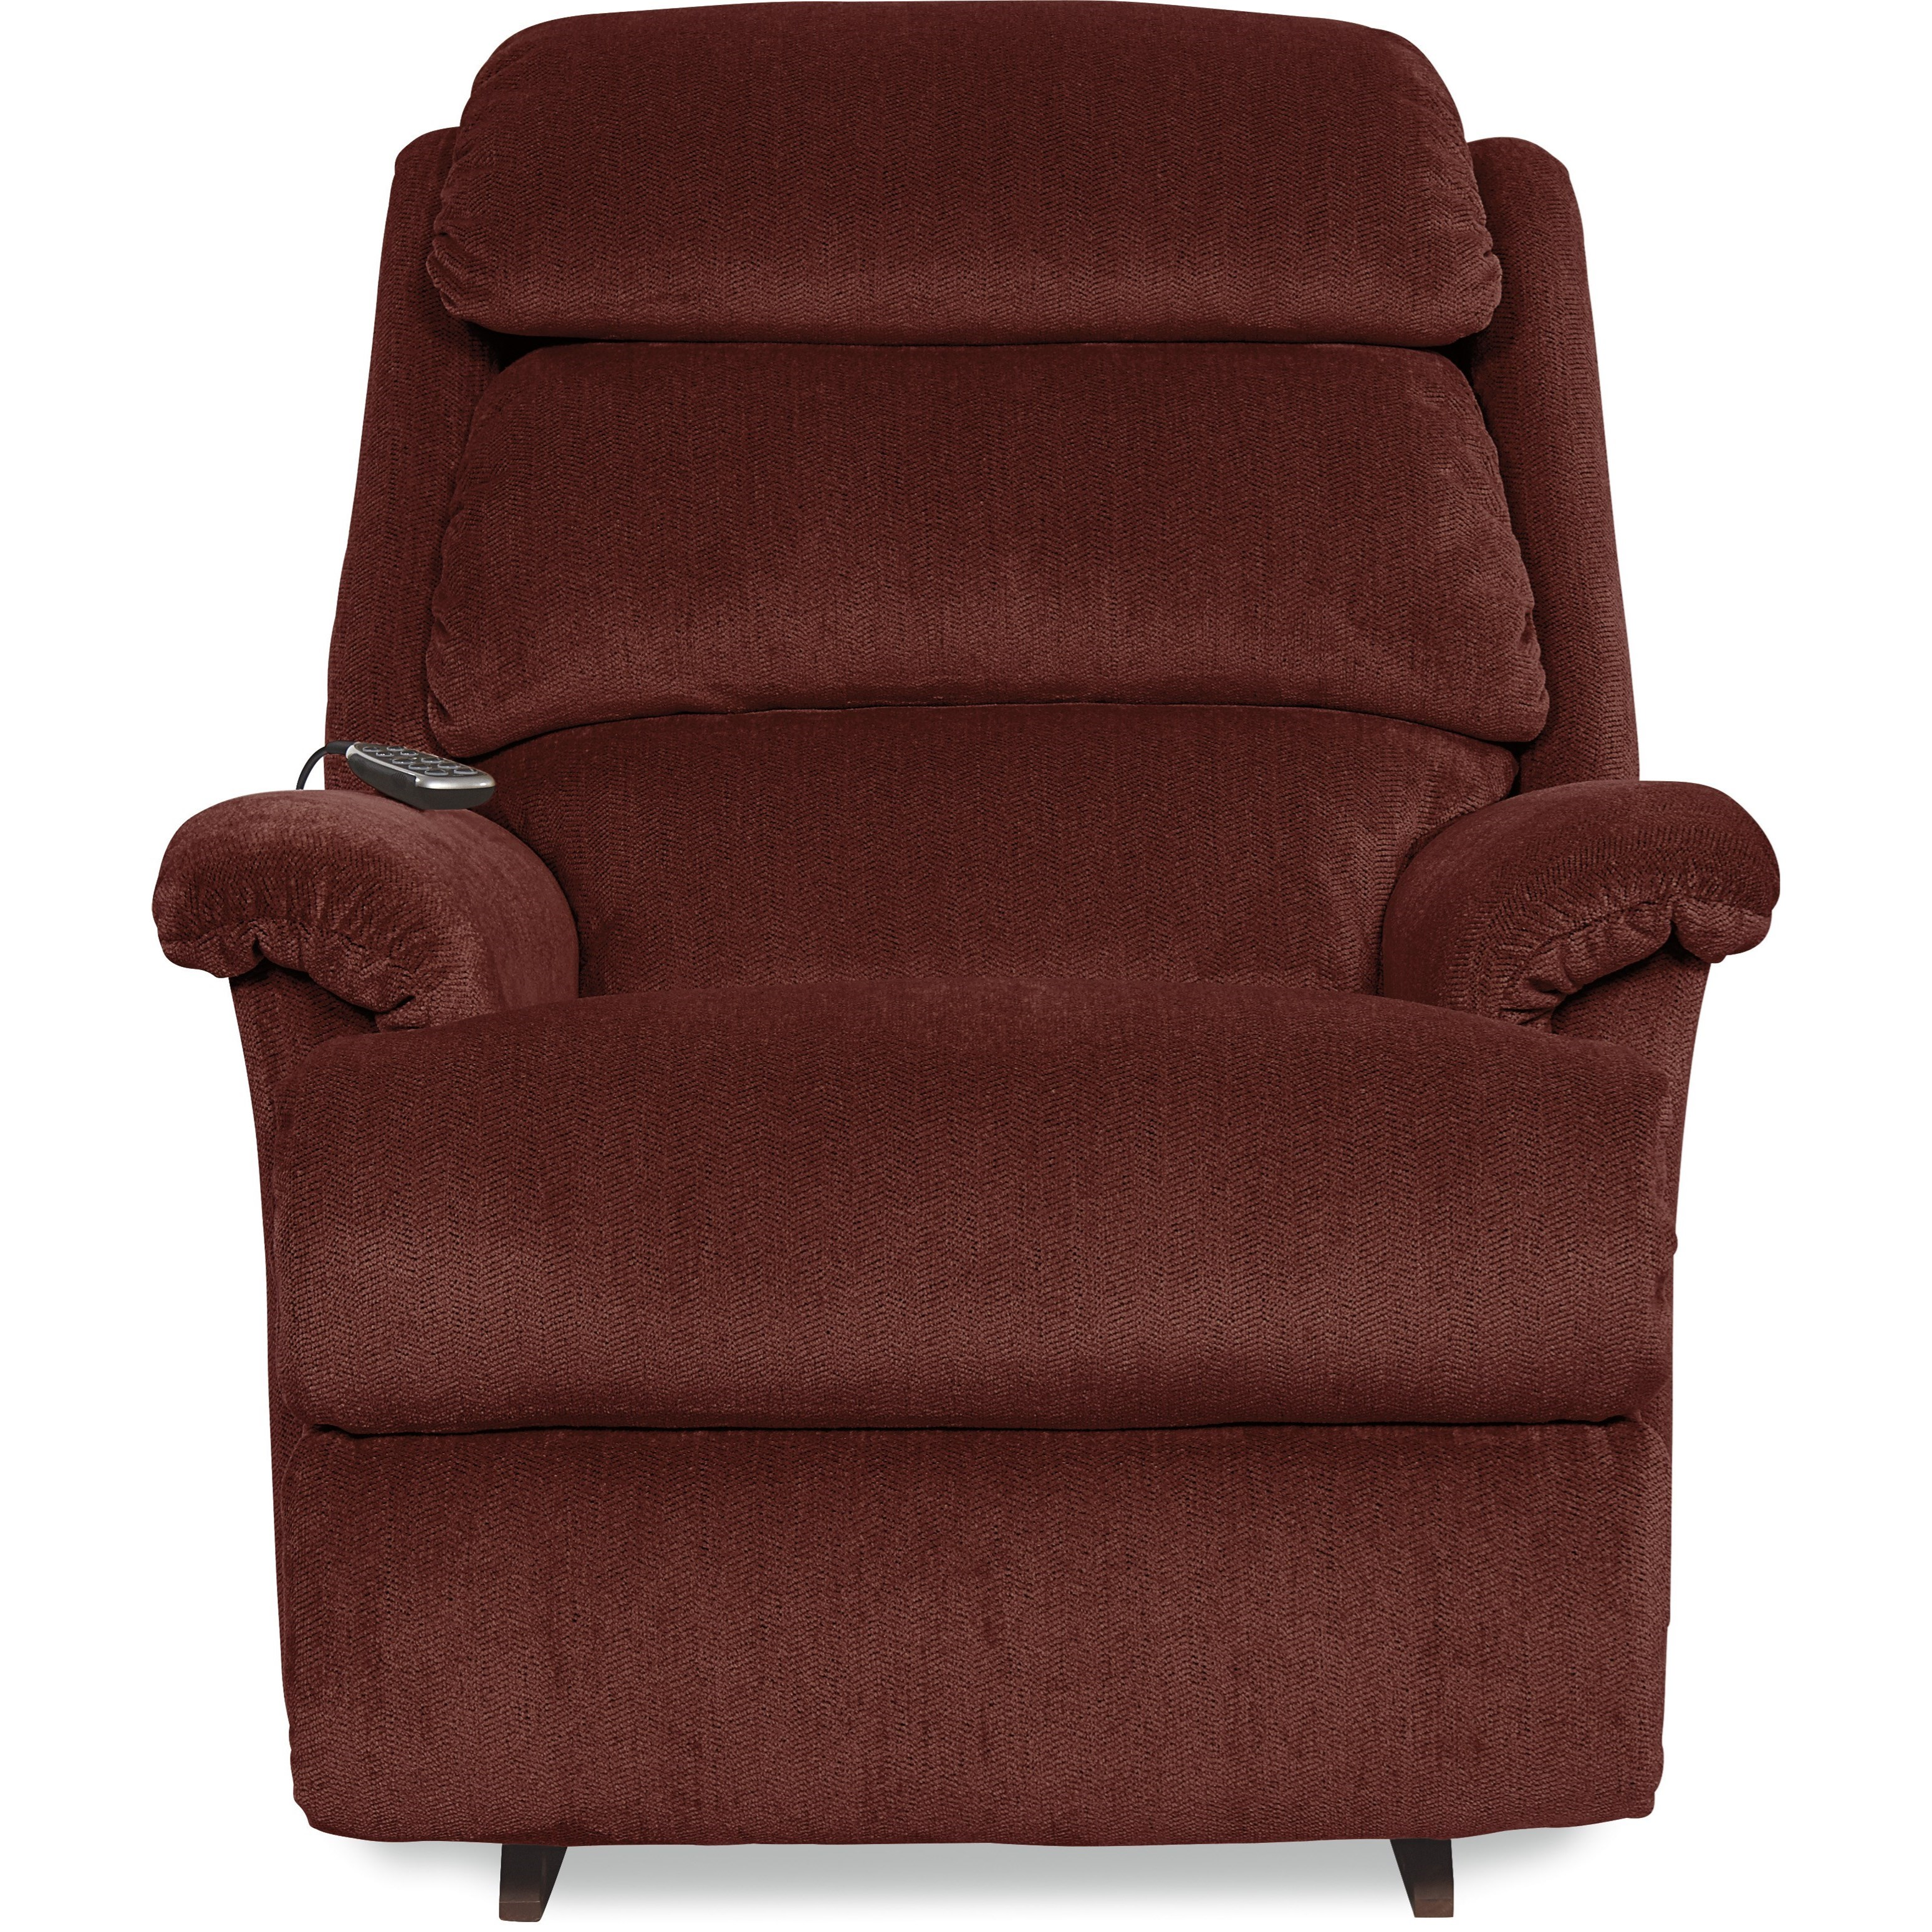 Astor Power Rocking Recliner w/ Headrest by La-Z-Boy at Home Furnishings Direct